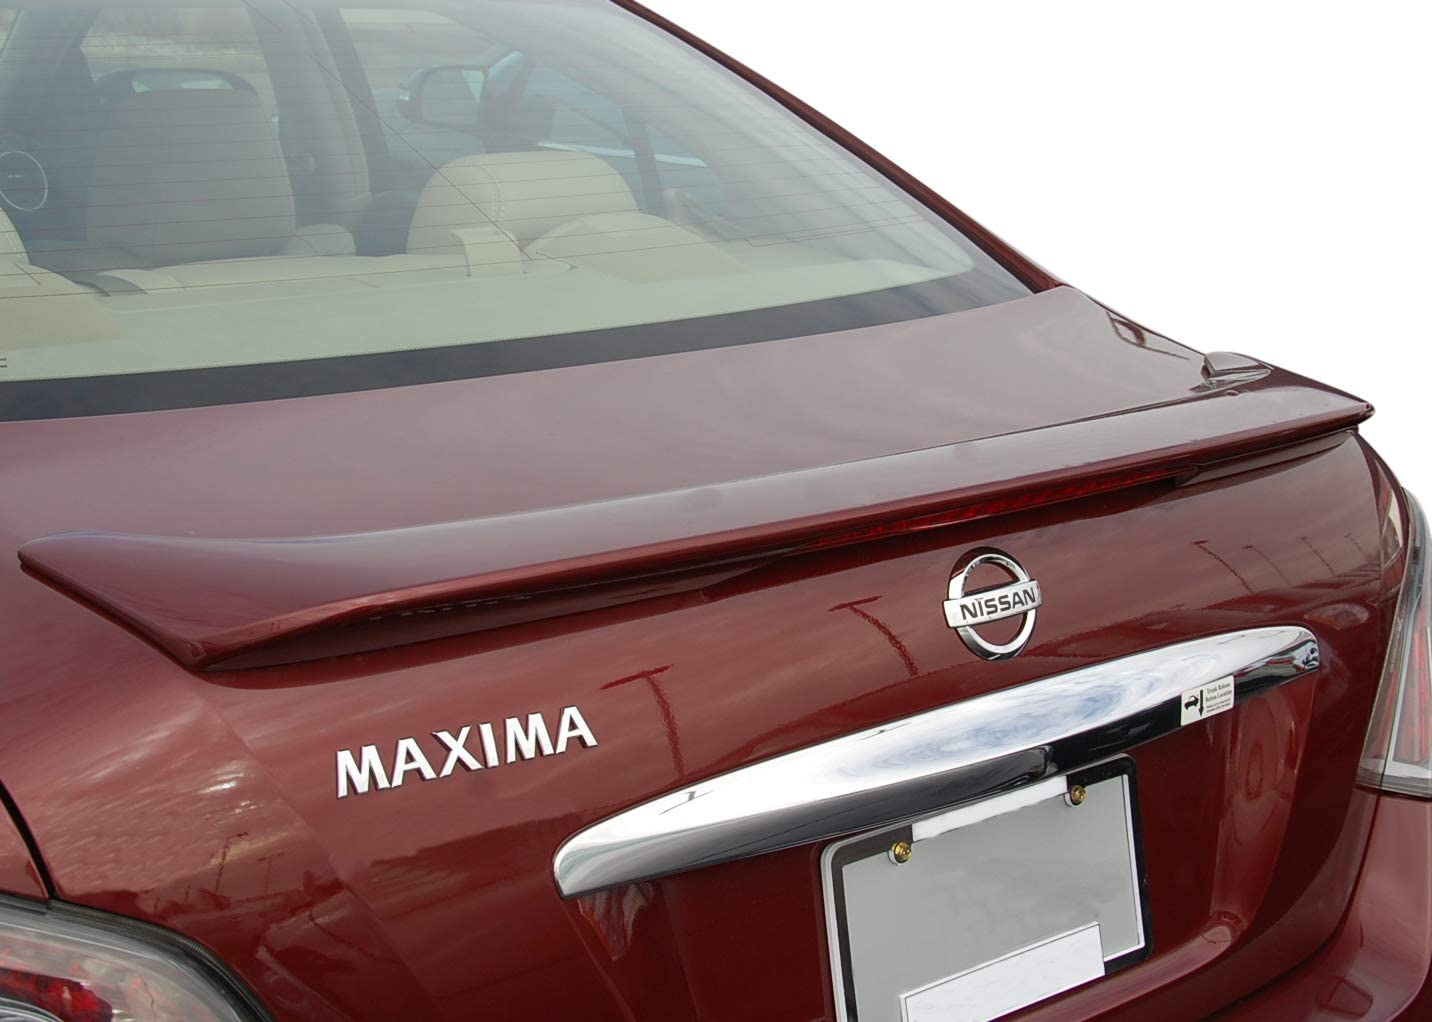 Painted Factory Style Spoiler made for the Be super welcome Bargain Nissan Maxima